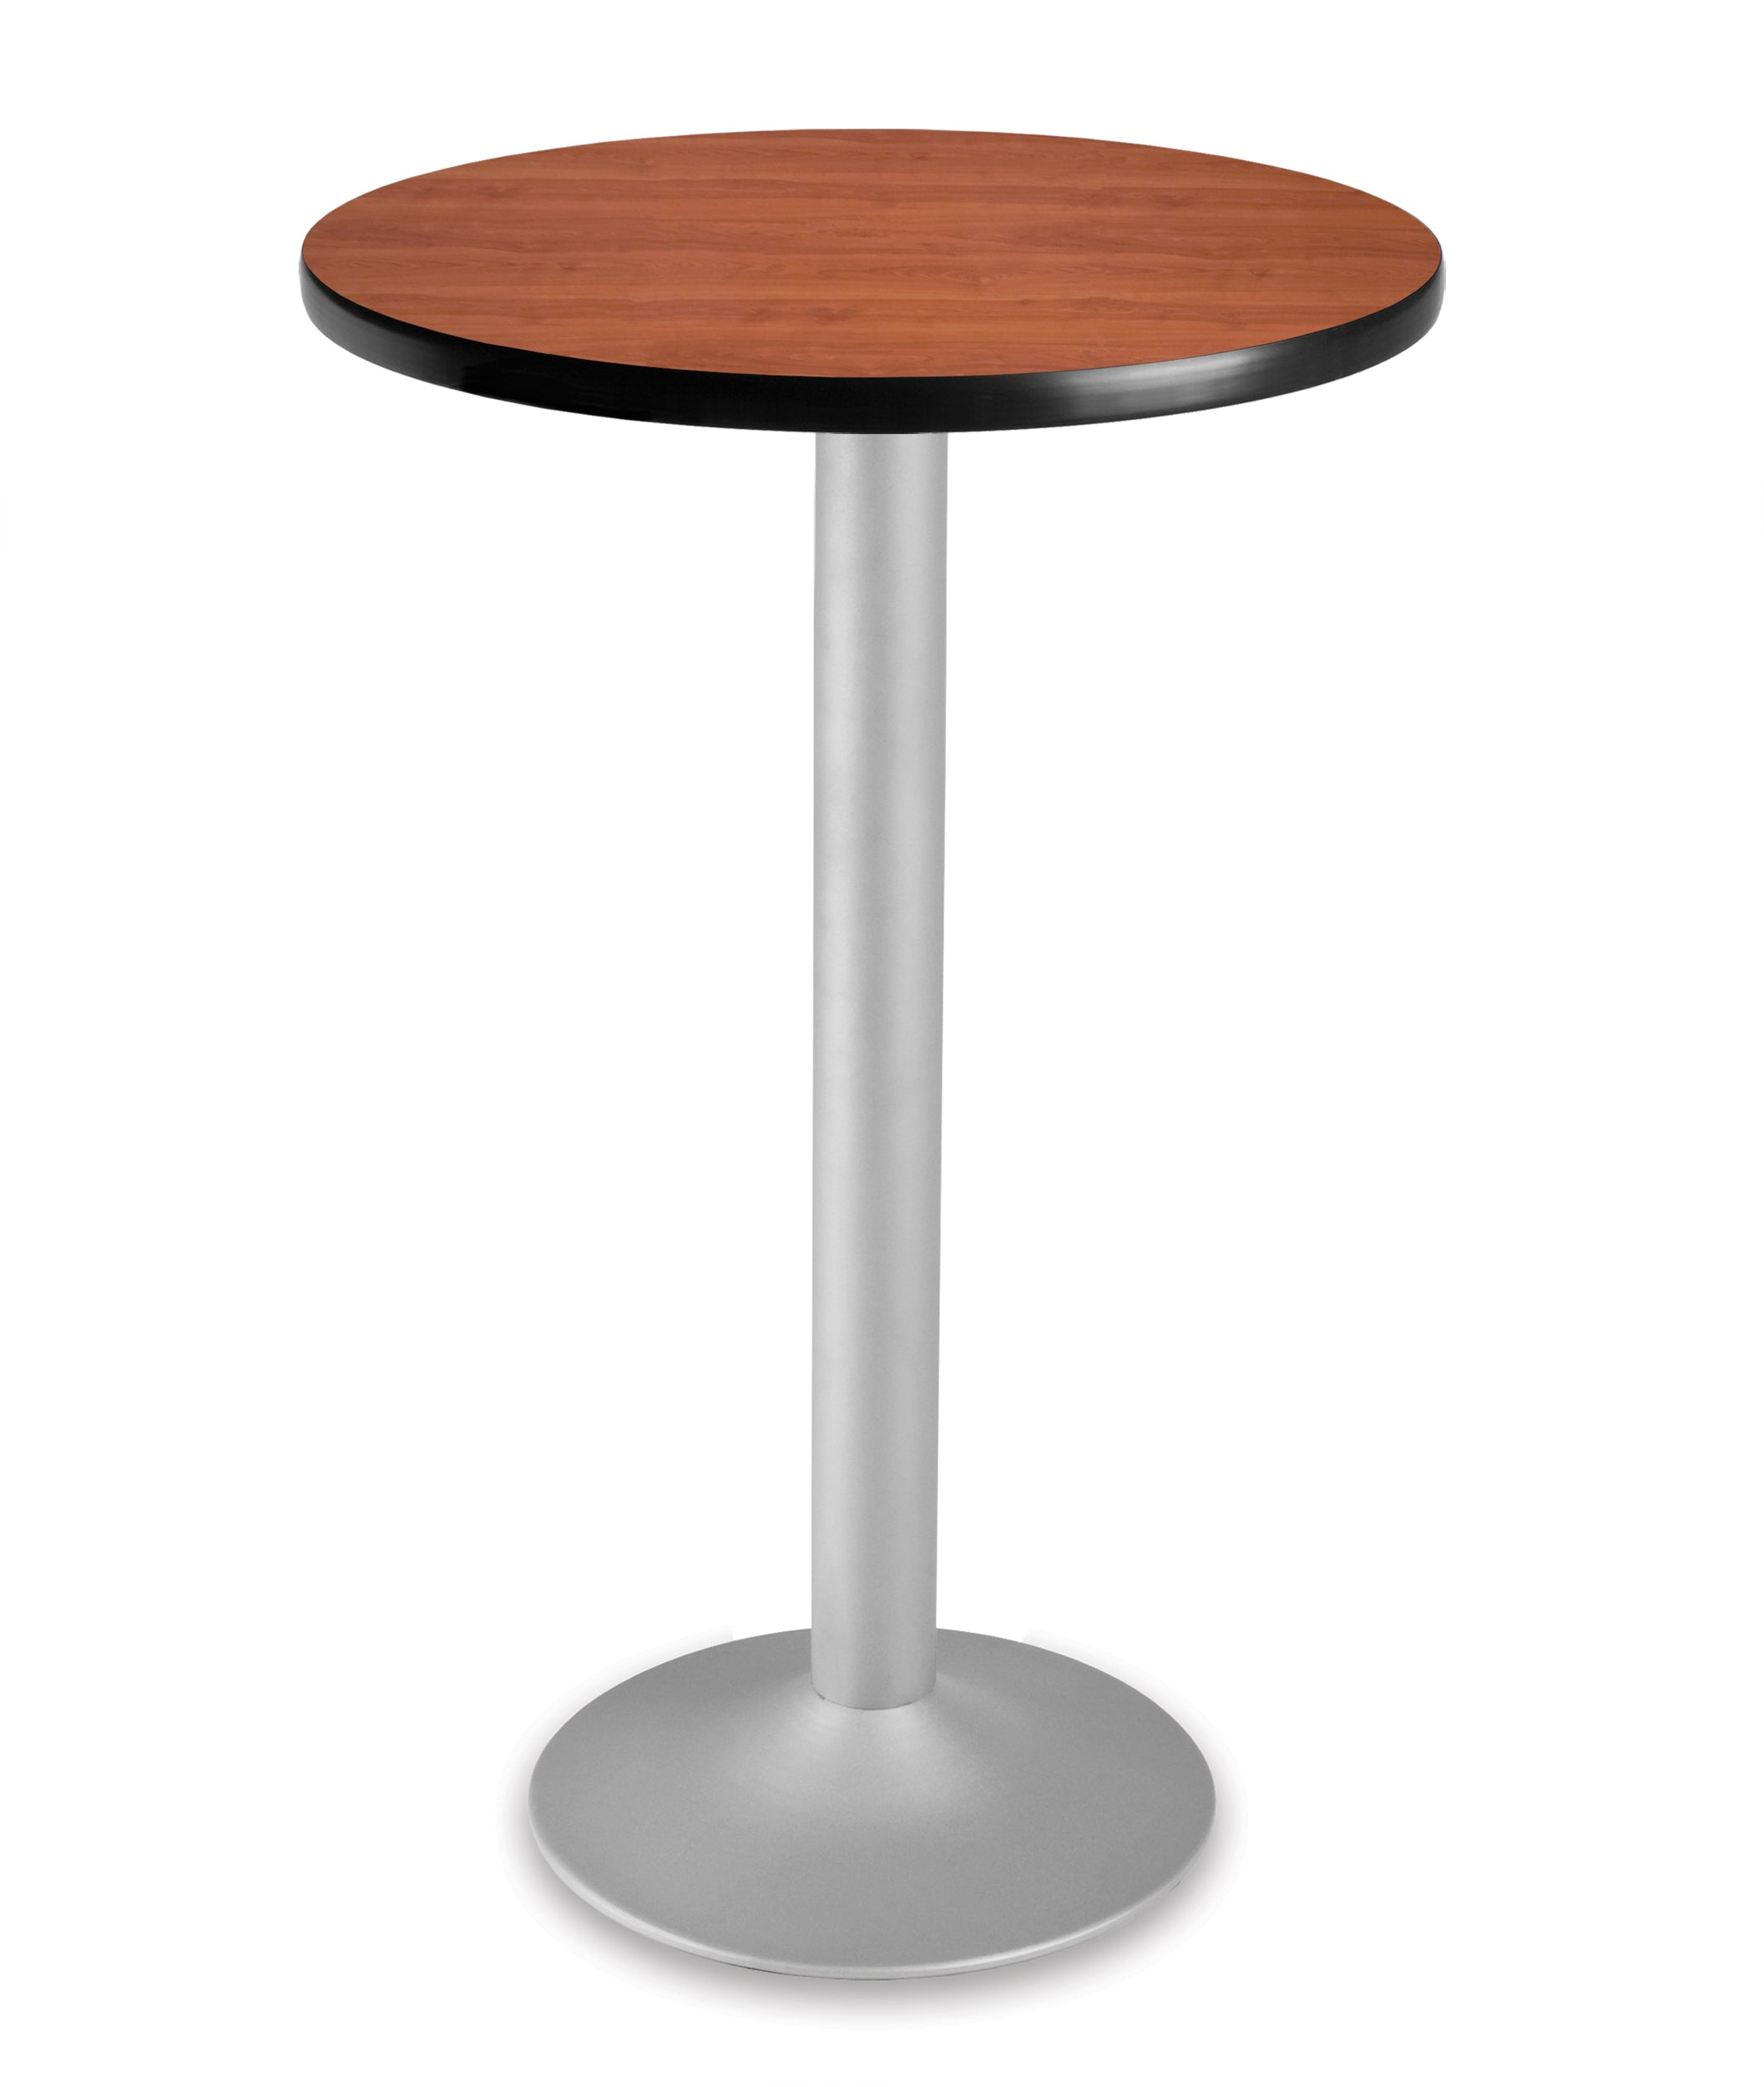 CFT24RD Round Cafe Height Folding Table with Pedestal Base 24 Inch